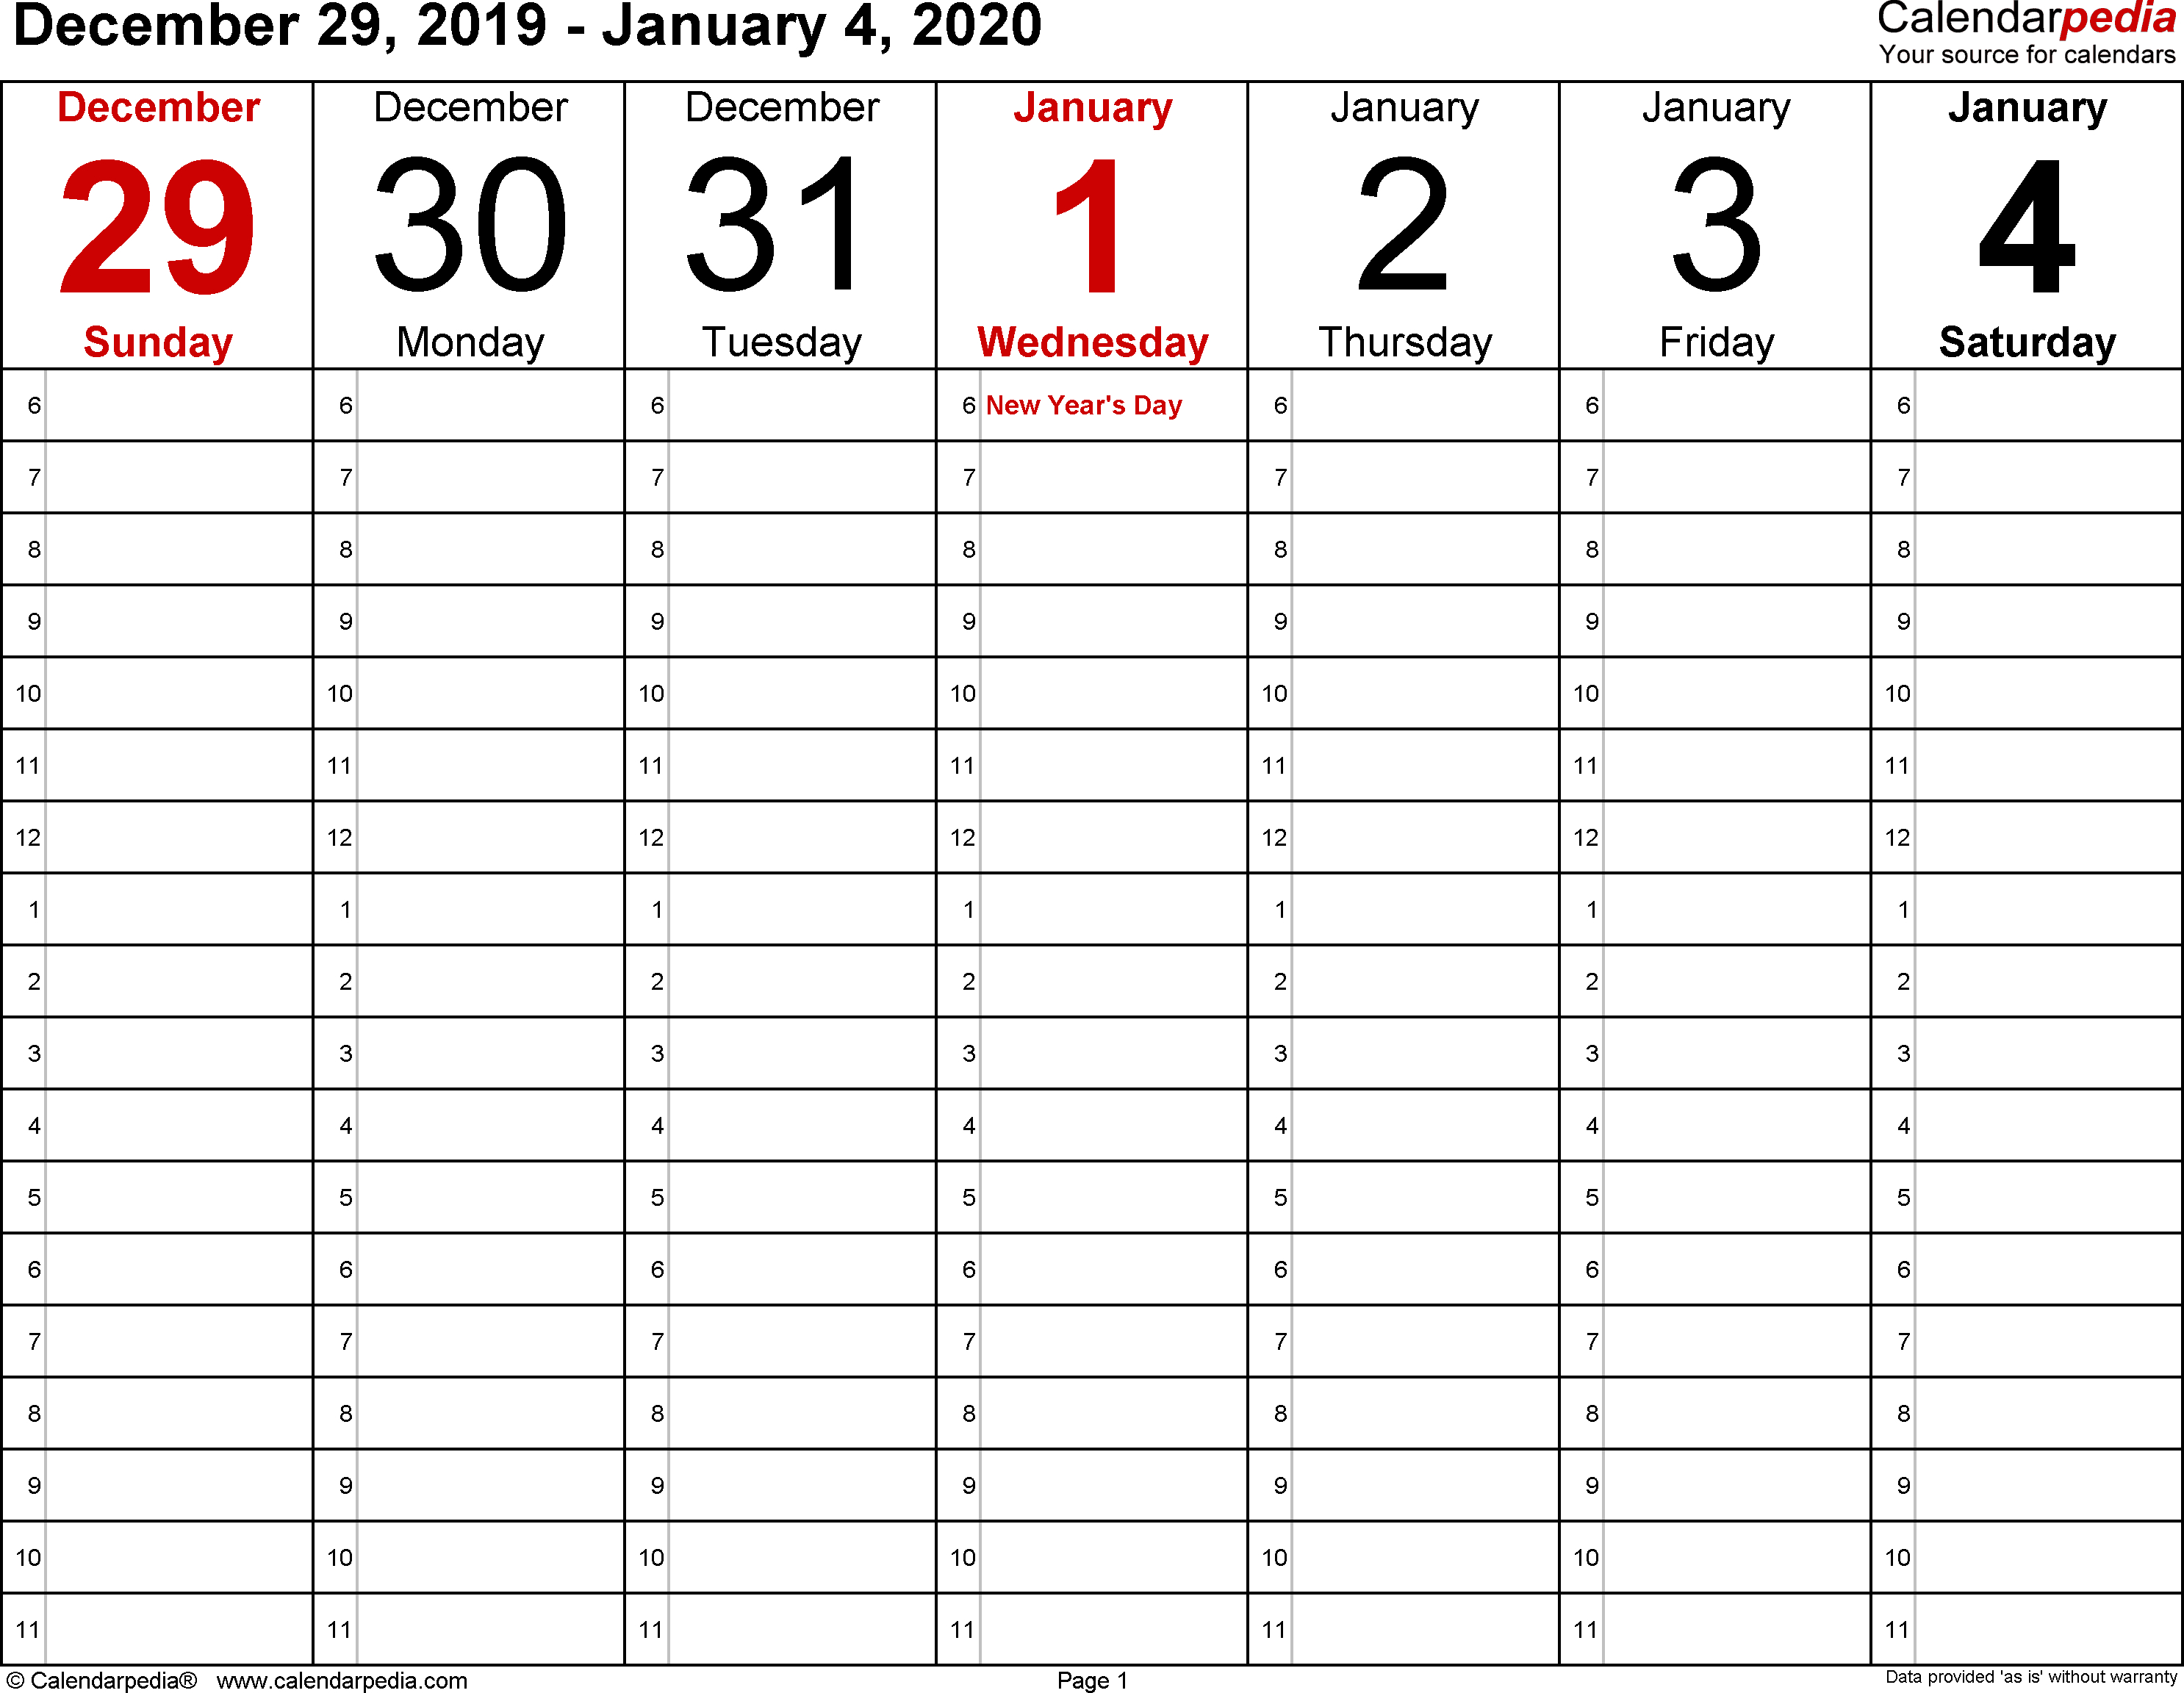 Weekly Calendar 2020 For Pdf - 12 Free Printable Templates for Employee Attendance Calendar 2020 Prntable